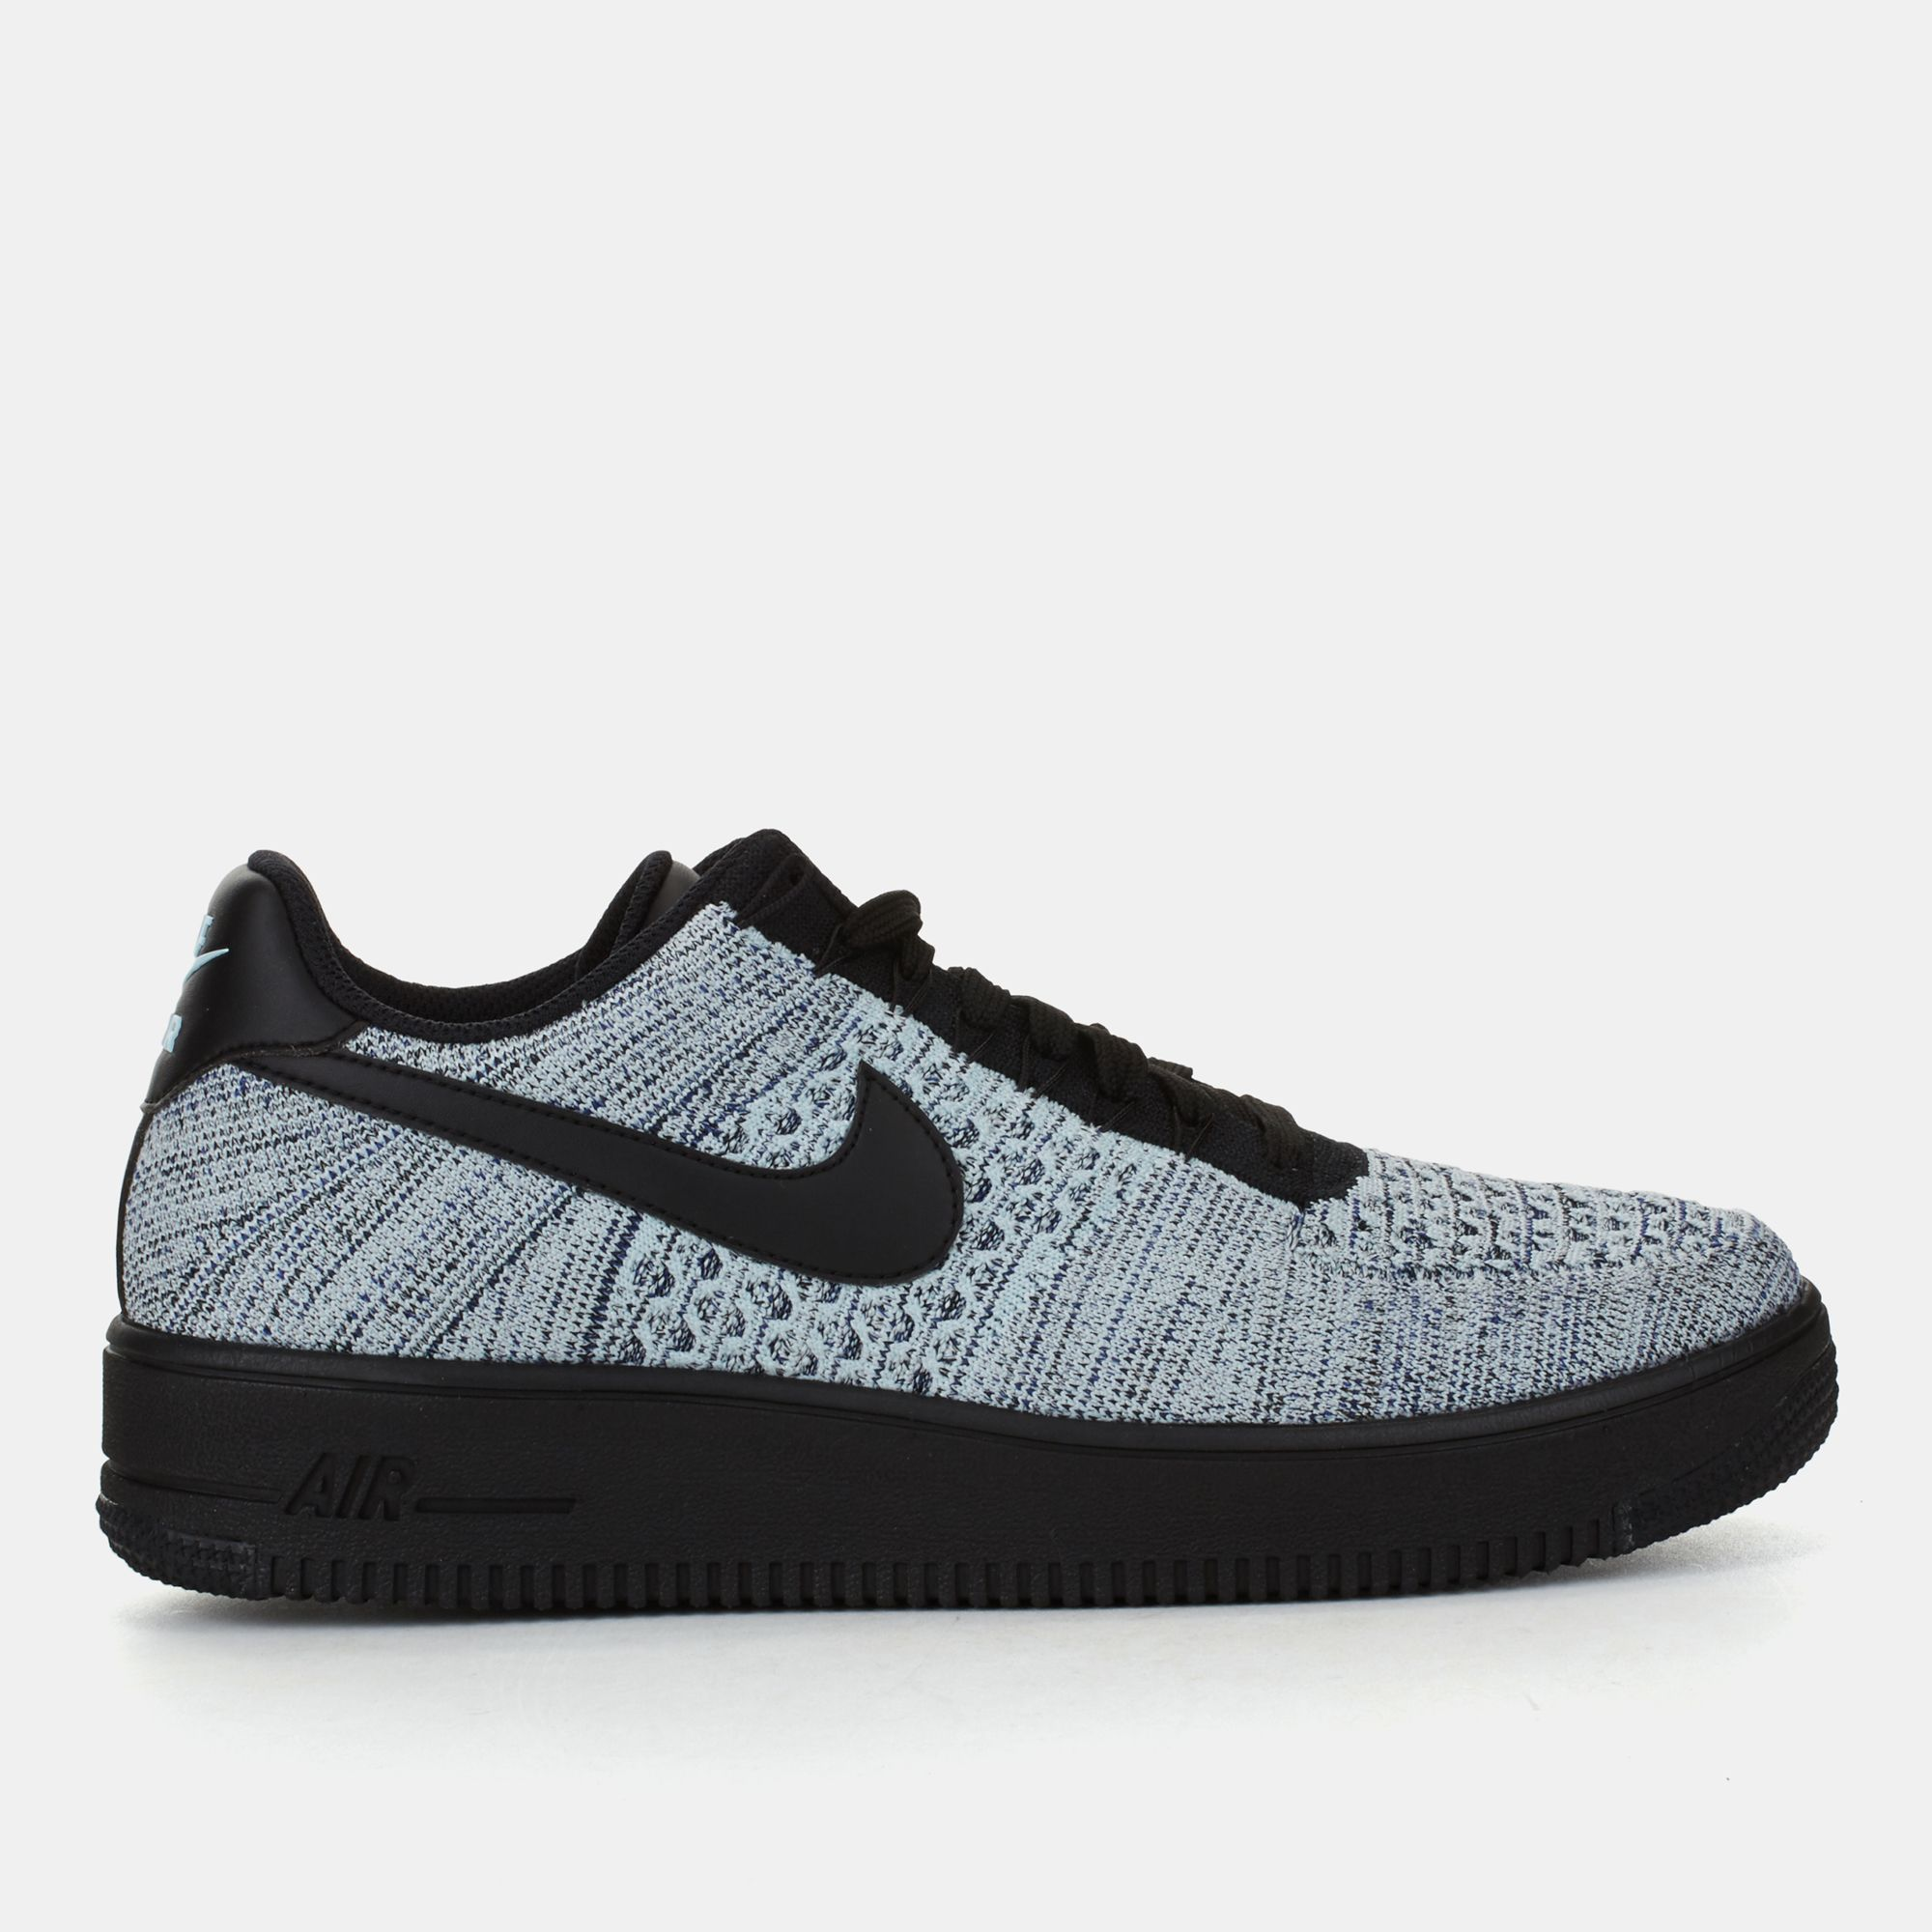 Nike Air Force 1 Ultra Flyknit Low Shoe